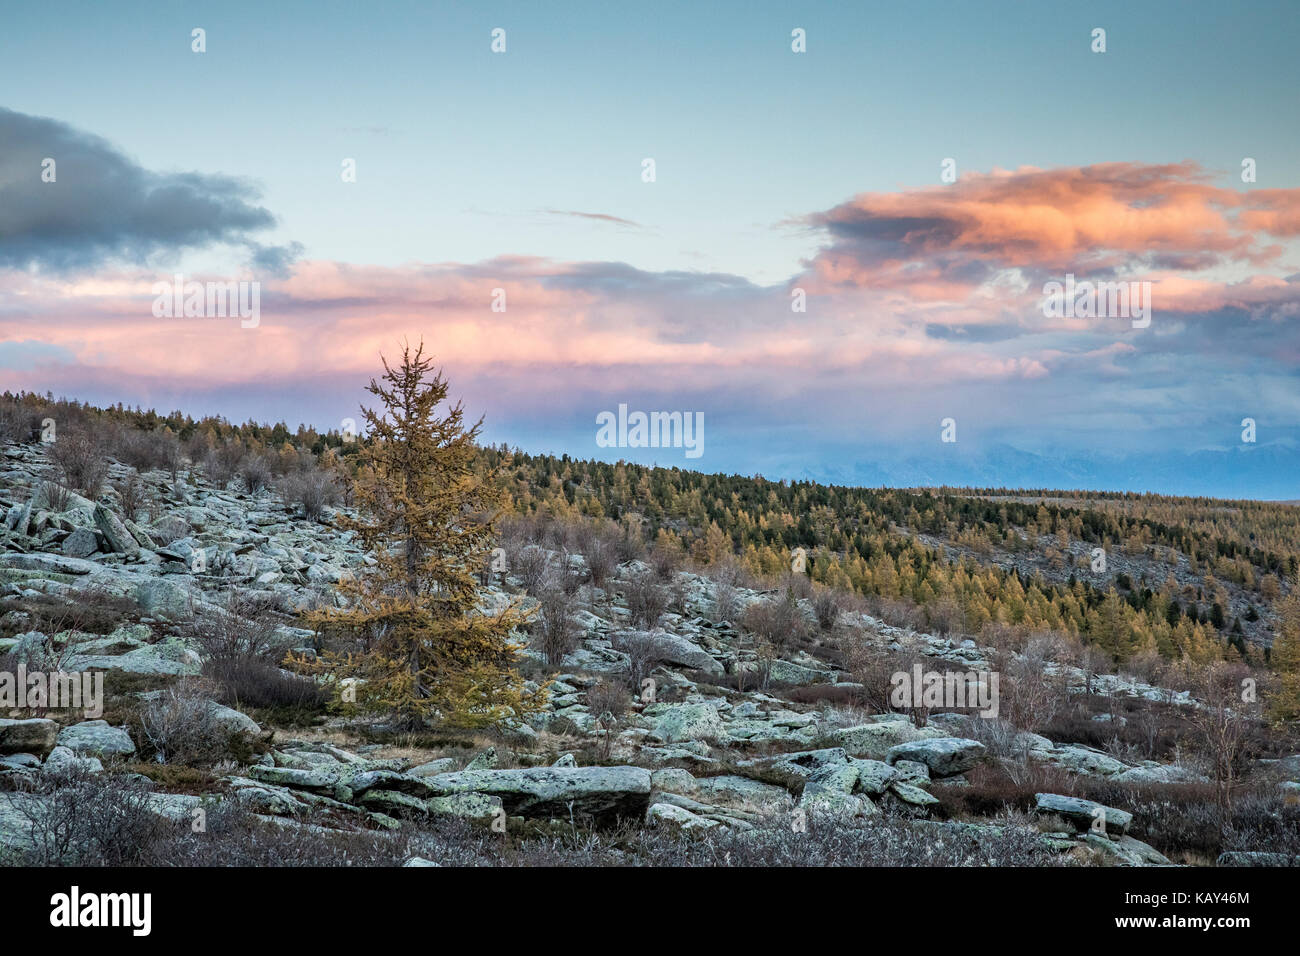 mongolian landscape in fall colours - Stock Image